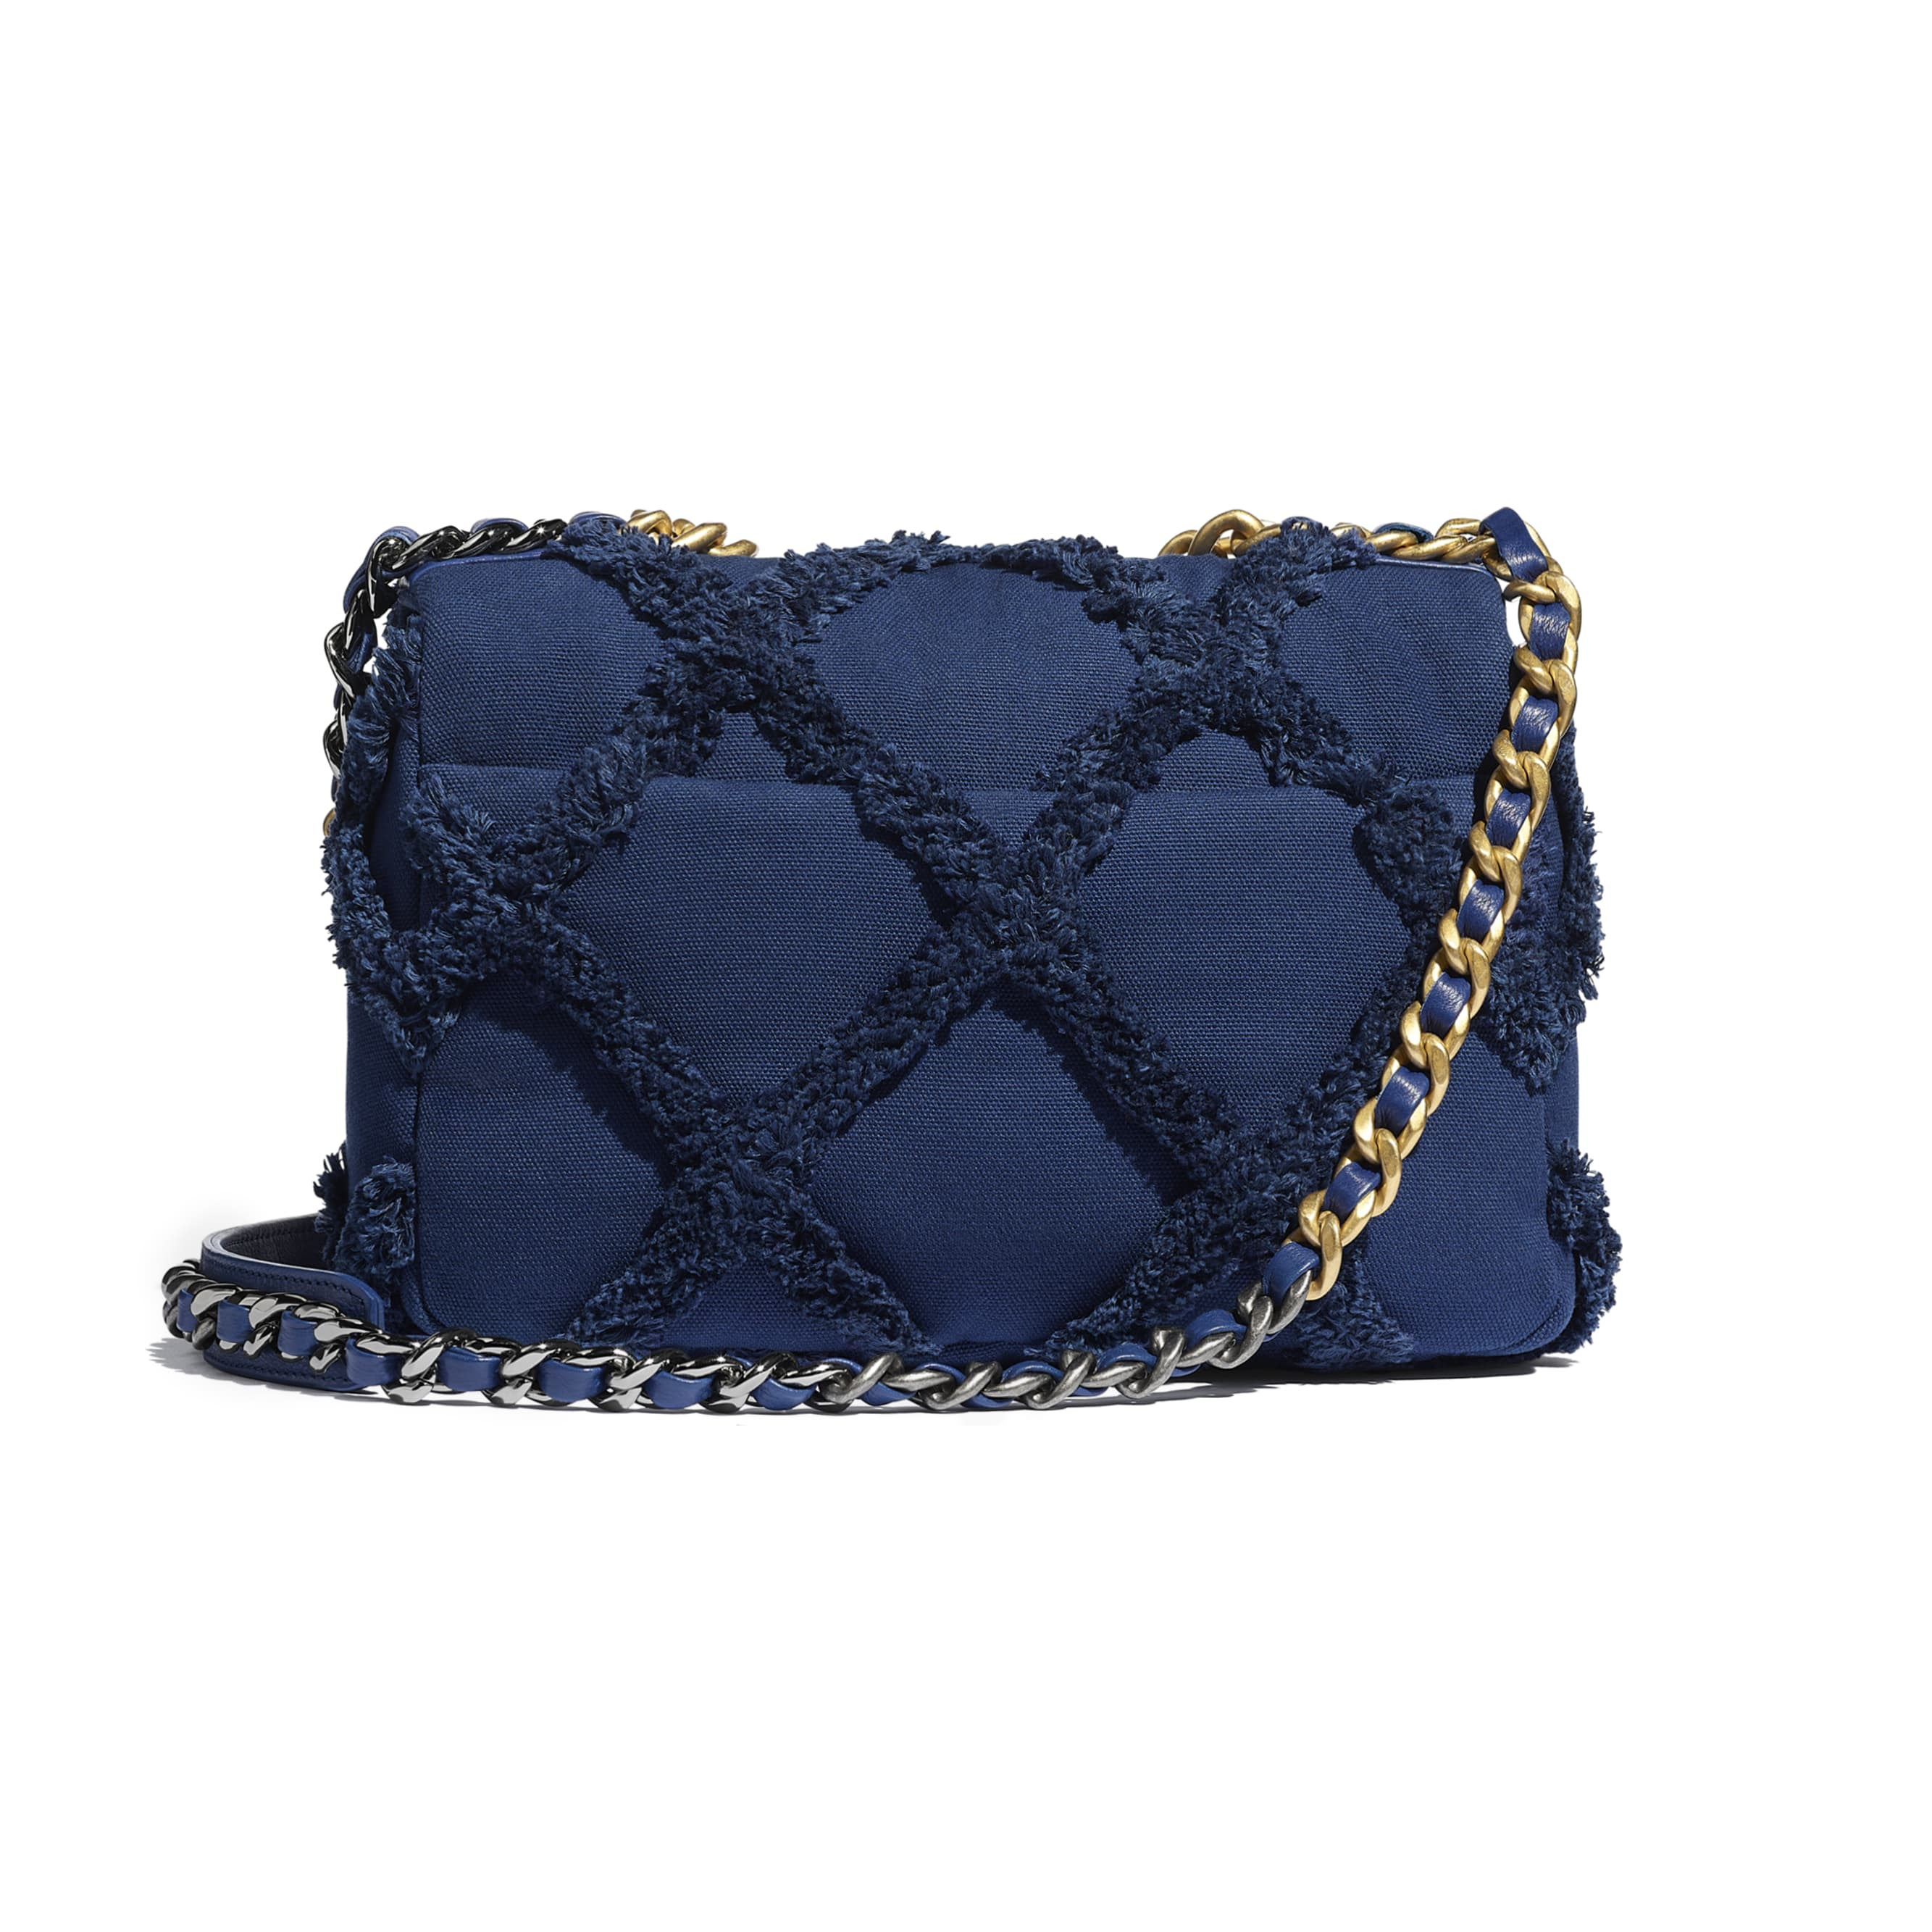 CHANEL 19 Flap Bag - Navy Blue - Cotton Canvas, Calfskin, Gold-Tone, Silver-Tone & Ruthenium-Finish Metal - CHANEL - Alternative view - see standard sized version